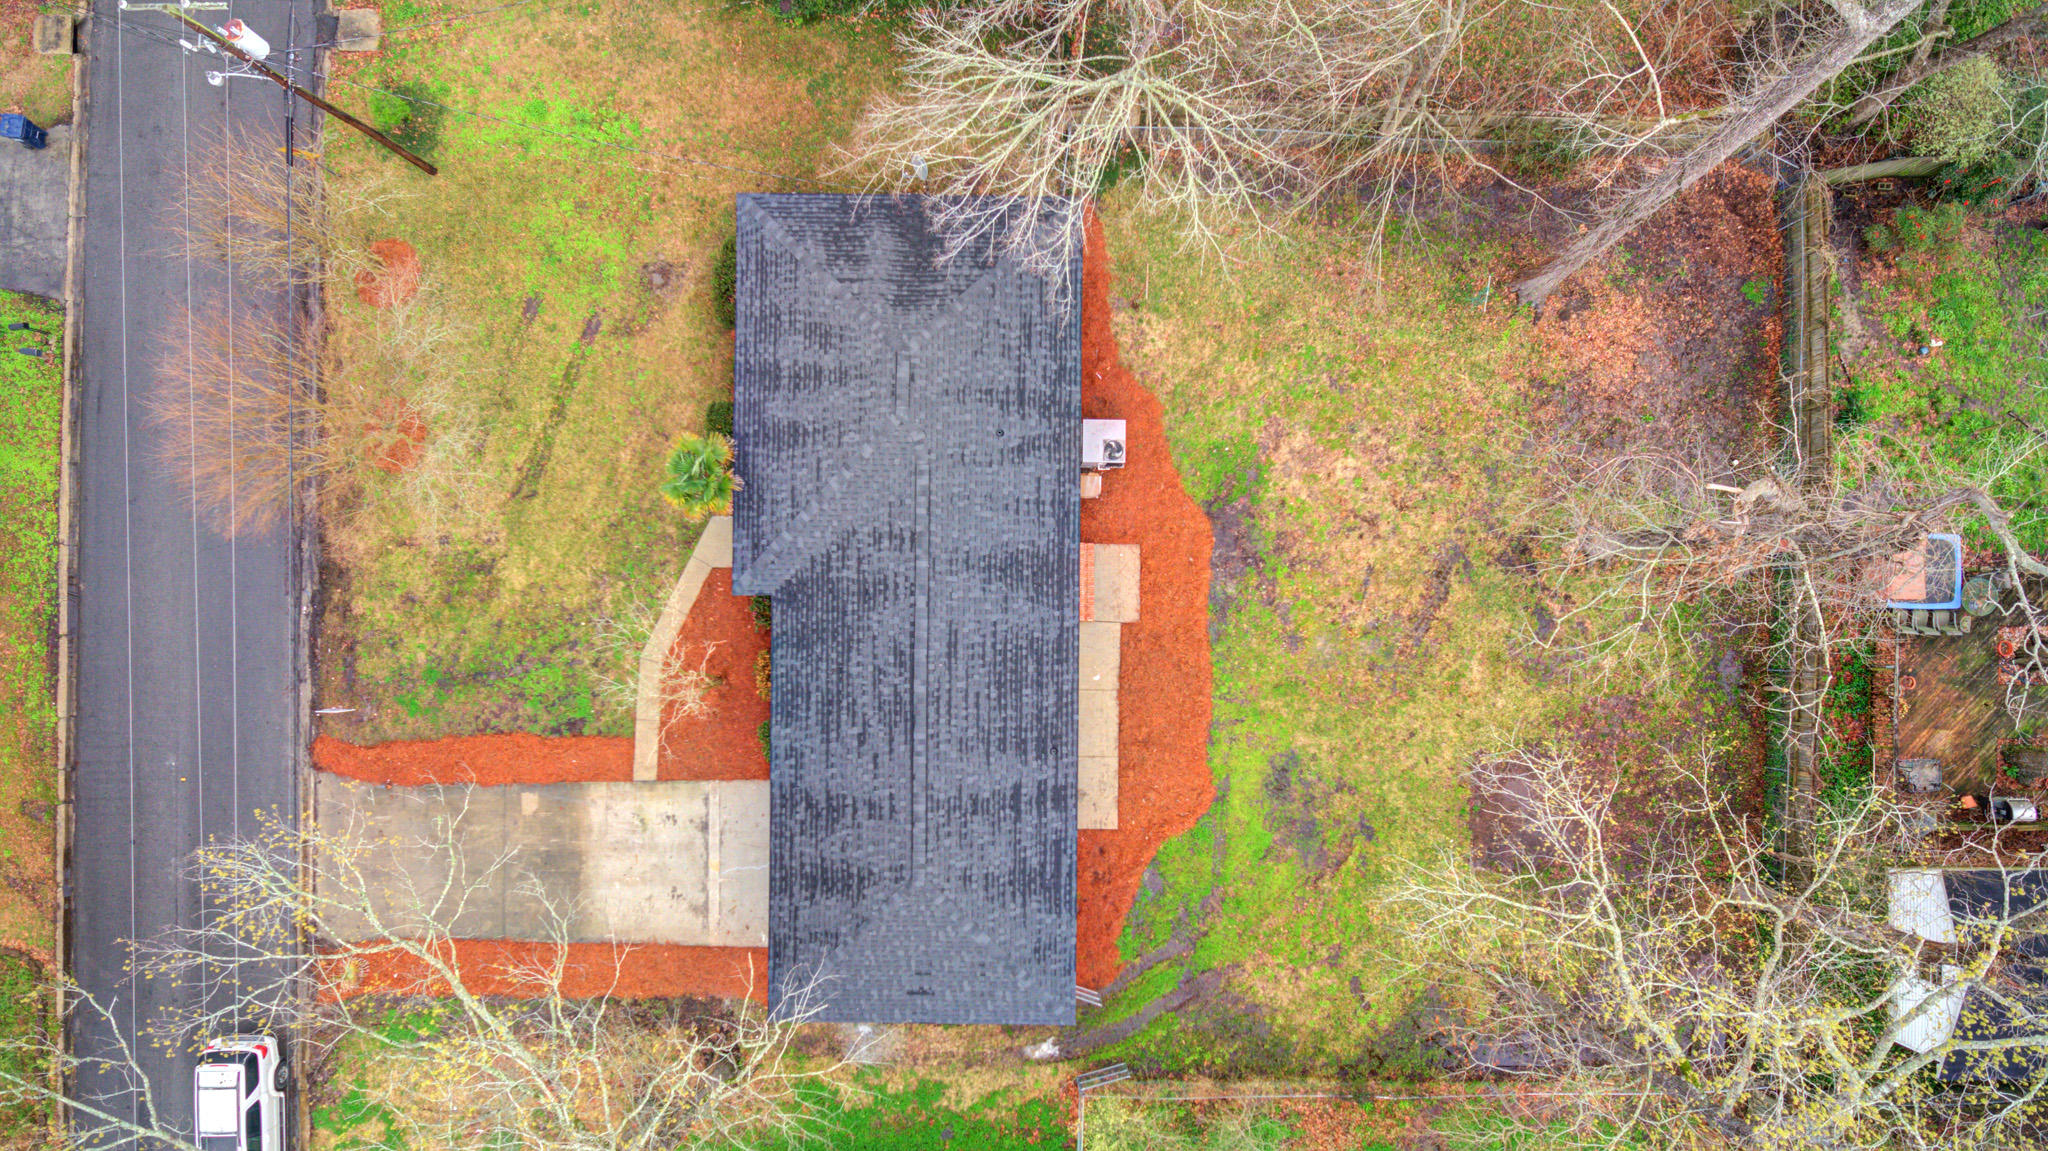 North Tranquil Acres Homes For Sale - 109 Monroe, Ladson, SC - 25